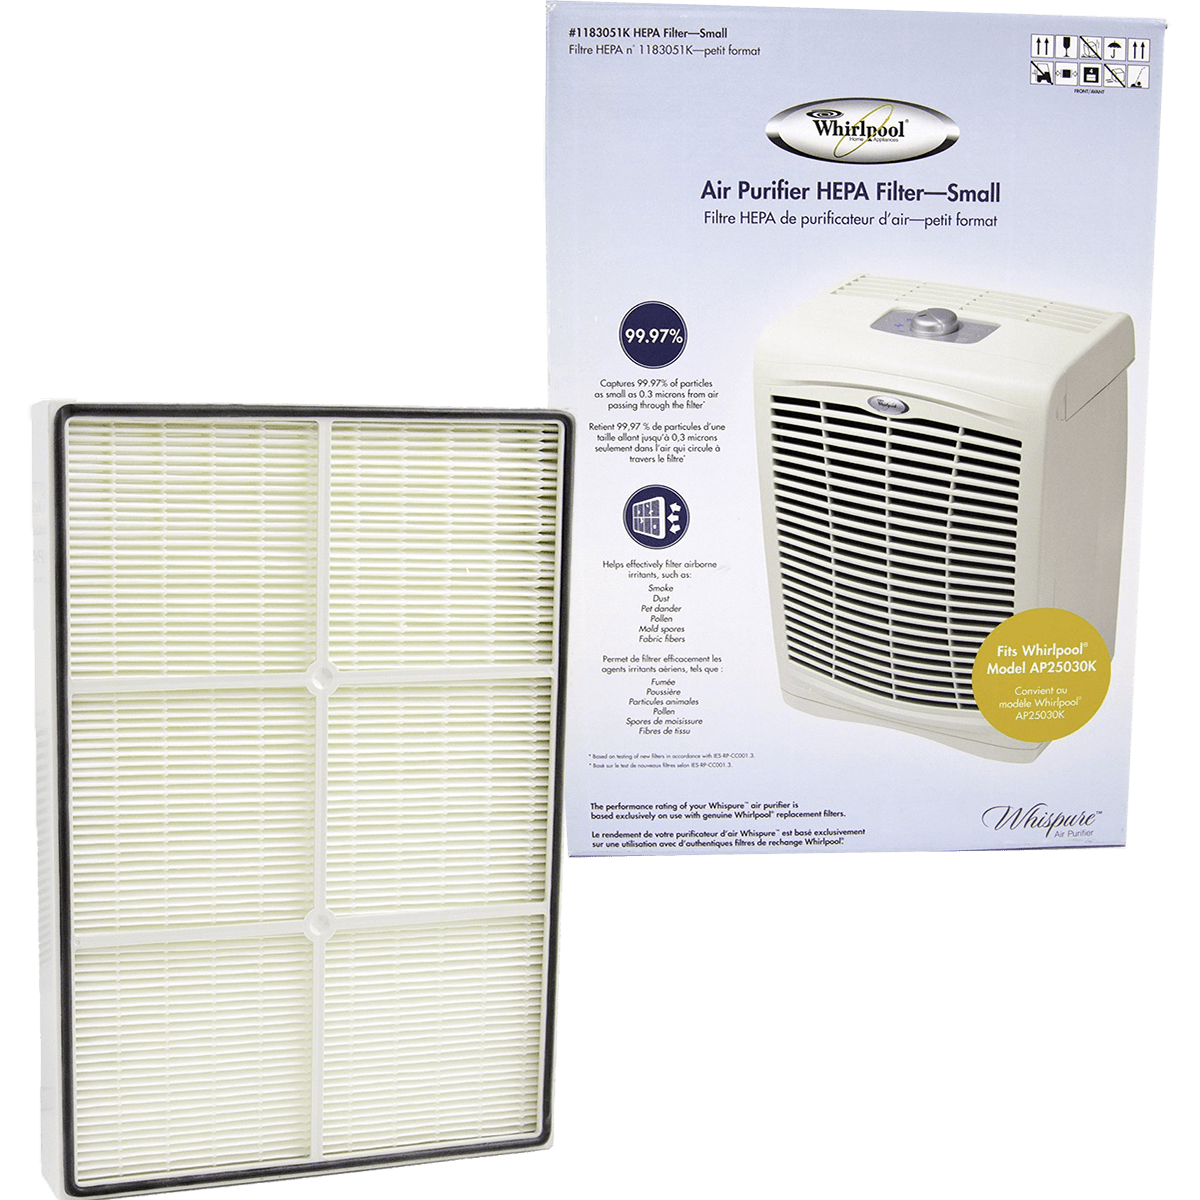 Whirlpool True HEPA Filter - Small (1183051K) wh608